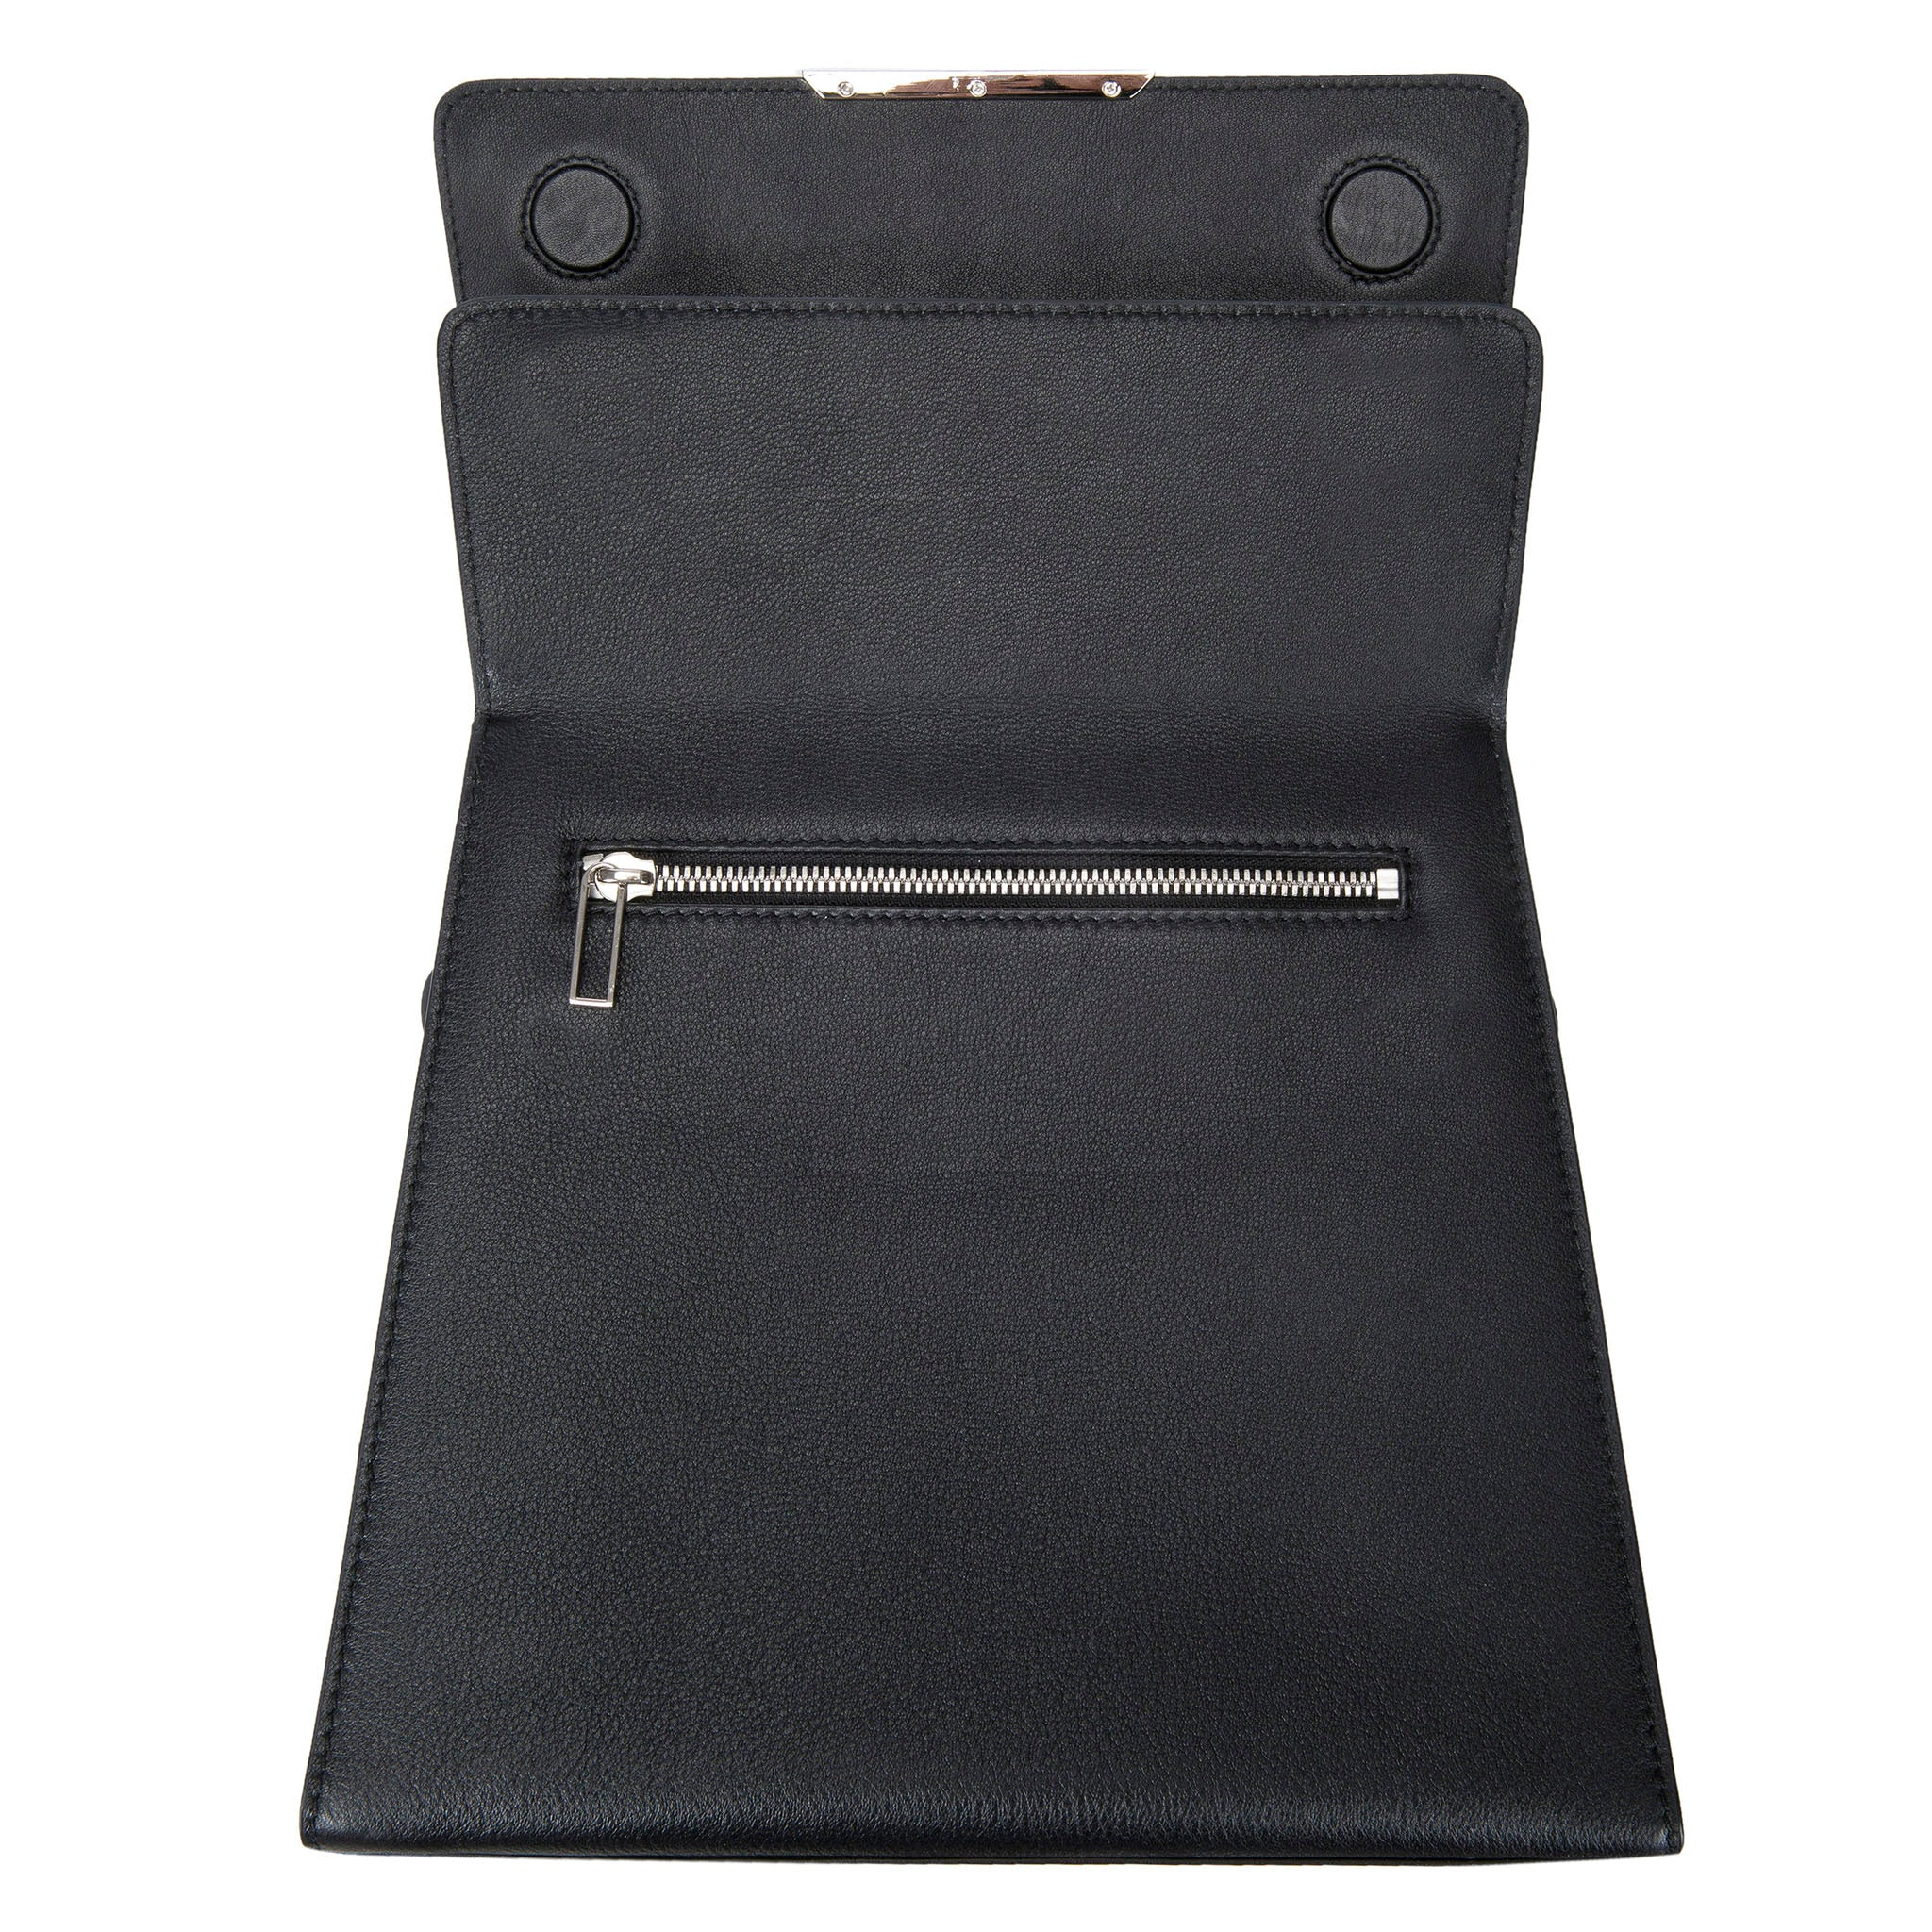 Modern Classic Crossbody Bag Black Shagreen Top And Black Leather Body Front Open View Jacq - Vivo Direct